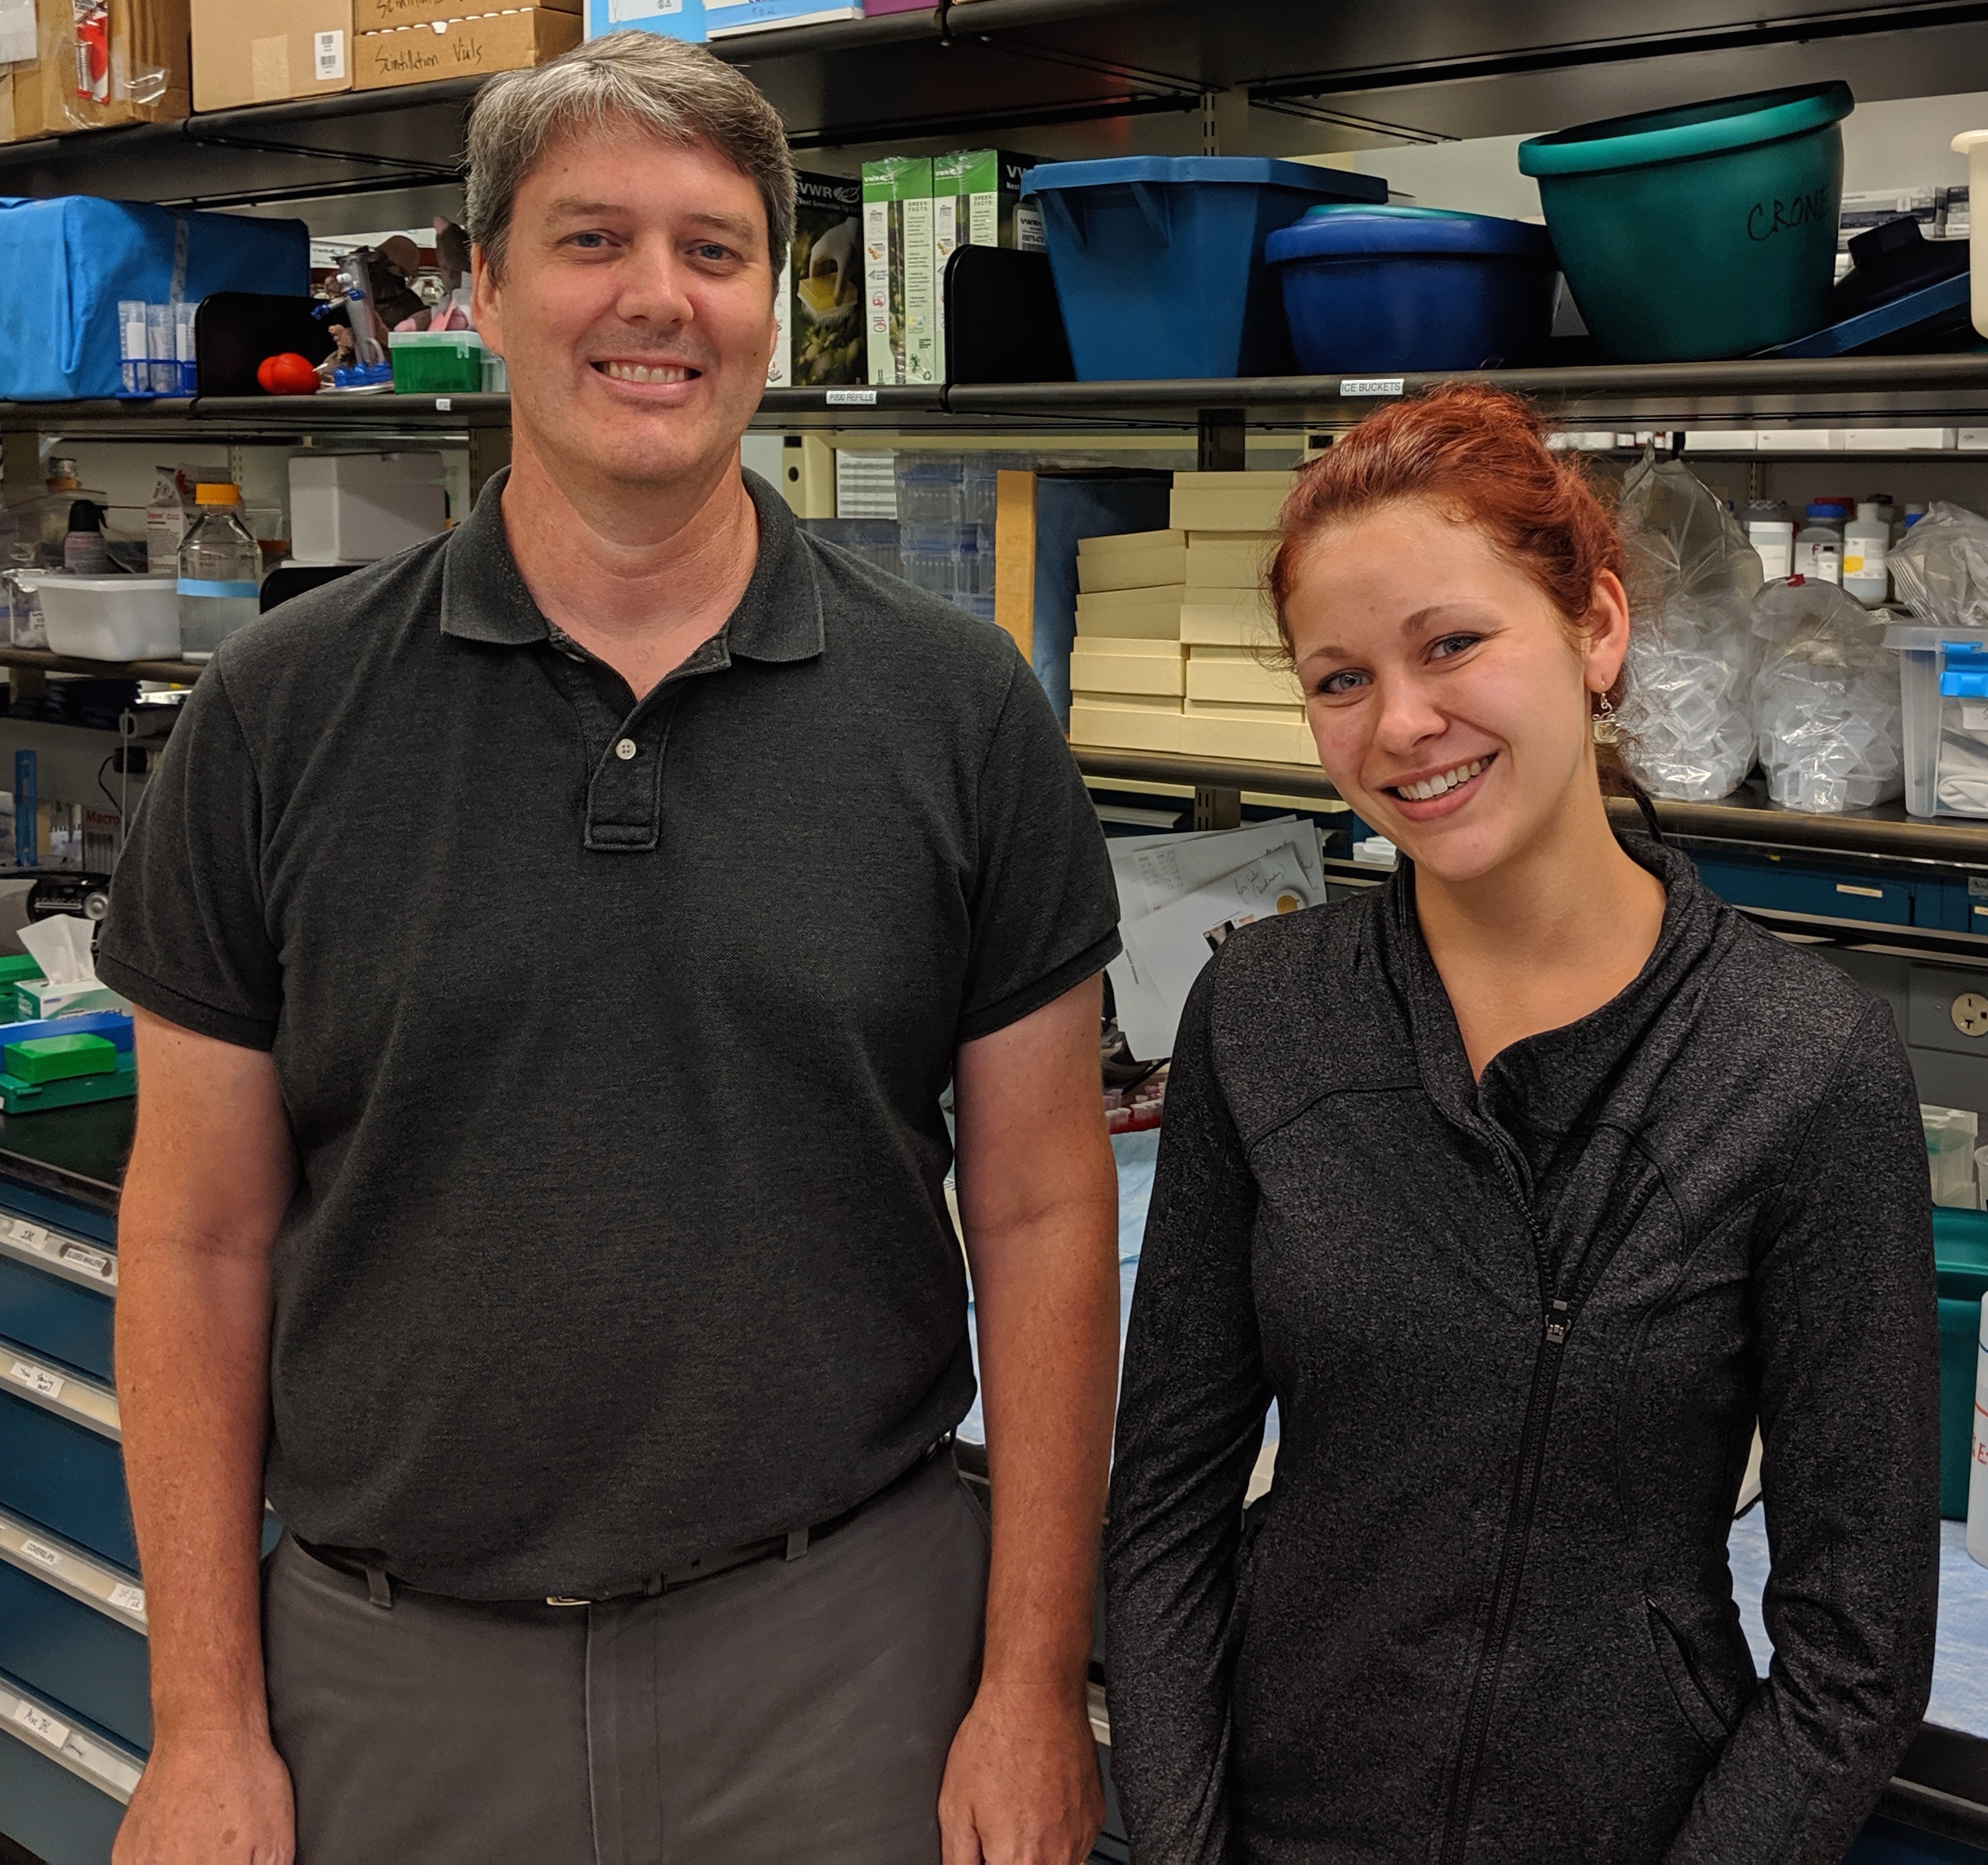 PhD Candidate Victoria Jensen and Dr. Steven Crone tell the story about their eNeuro paper that showed that glutamatergic V2a neurons participate in a circuit that serves to constrain the activity of accessory respiratory muscles so that they are active only when needed.